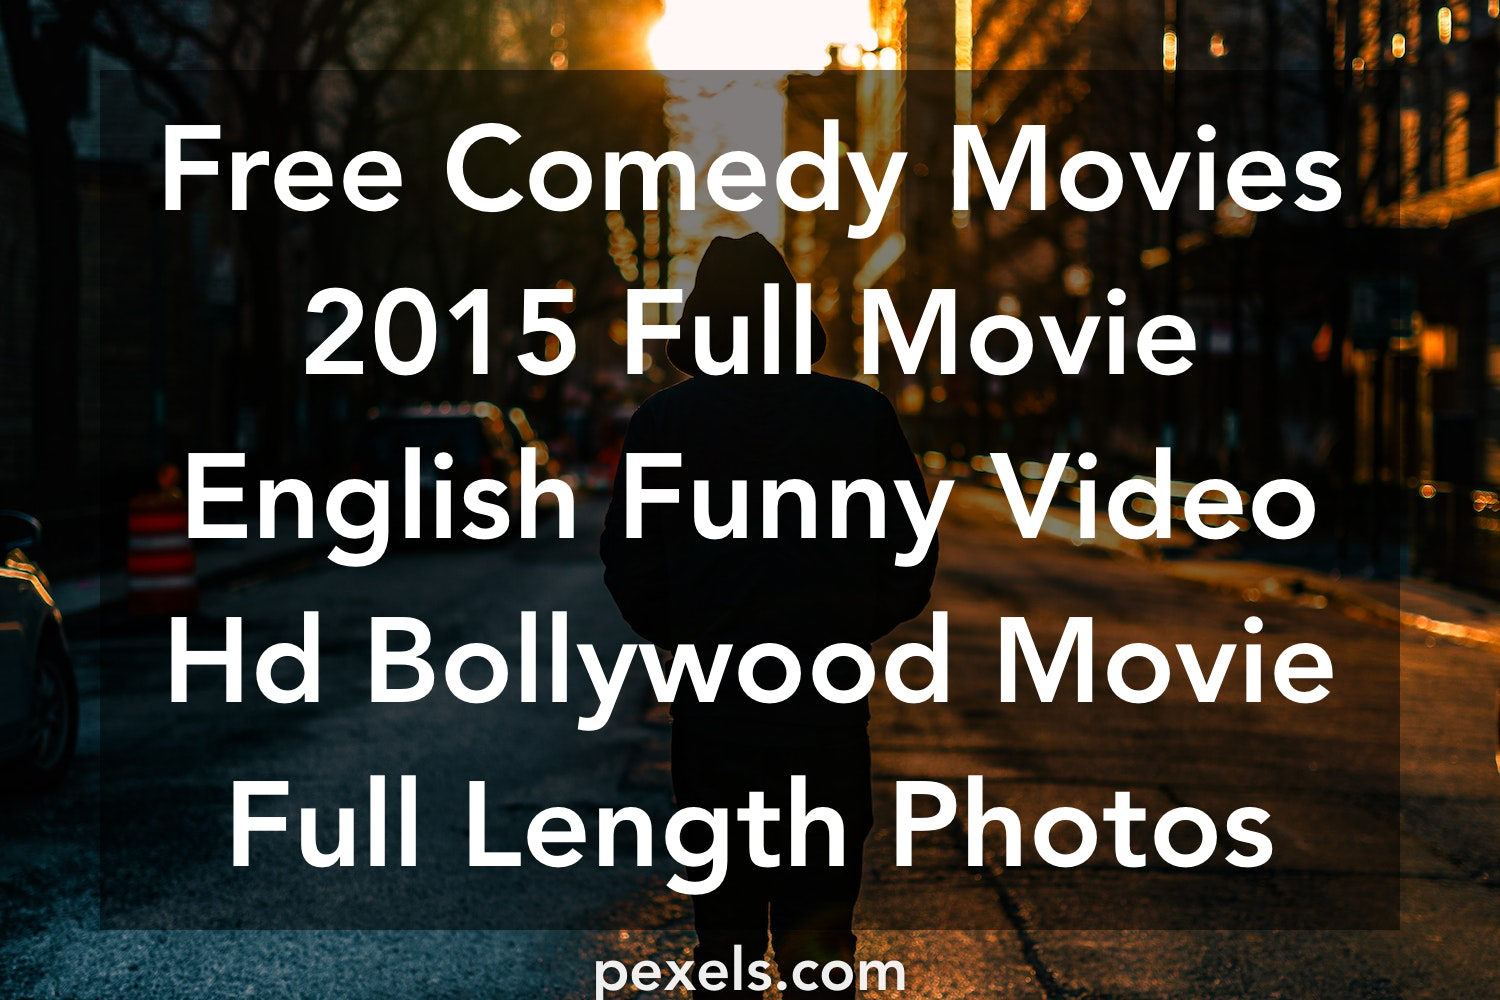 watch free comedy movies online without downloading